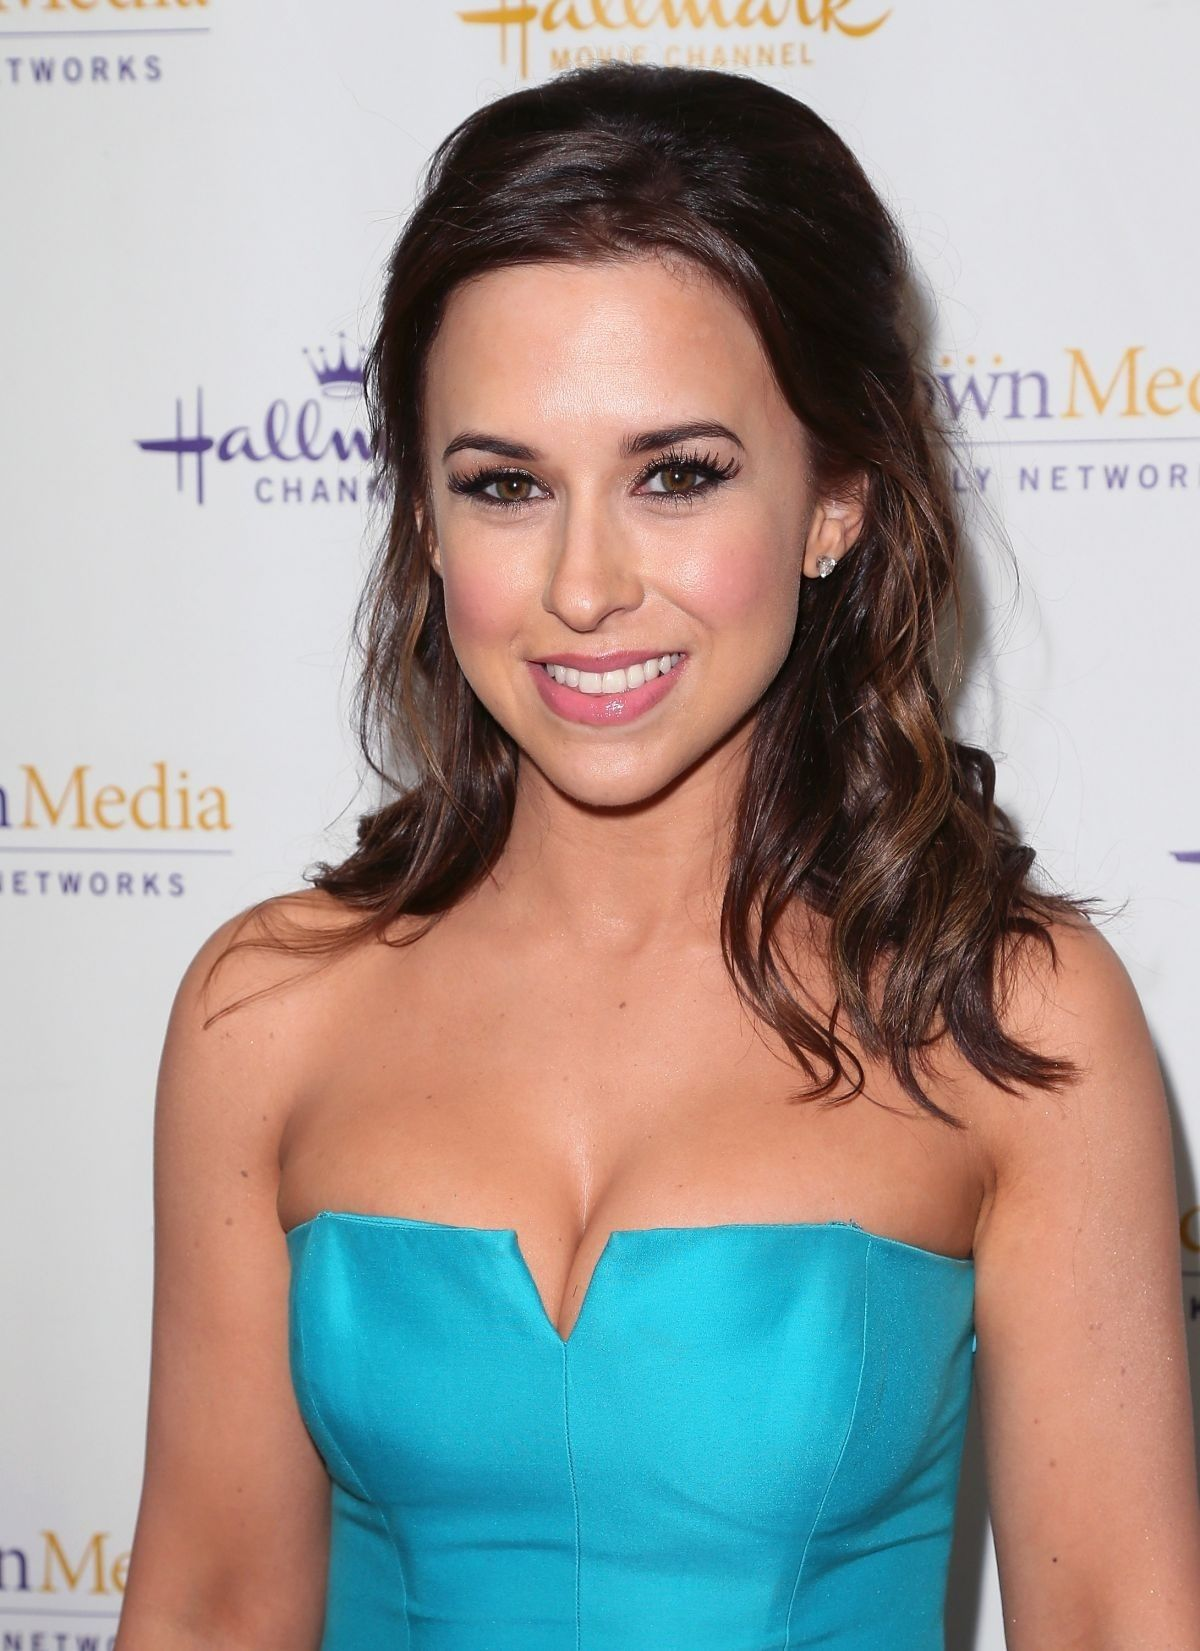 Cleavage Lacey Chabert naked (71 photo), Topless, Leaked, Feet, underwear 2006